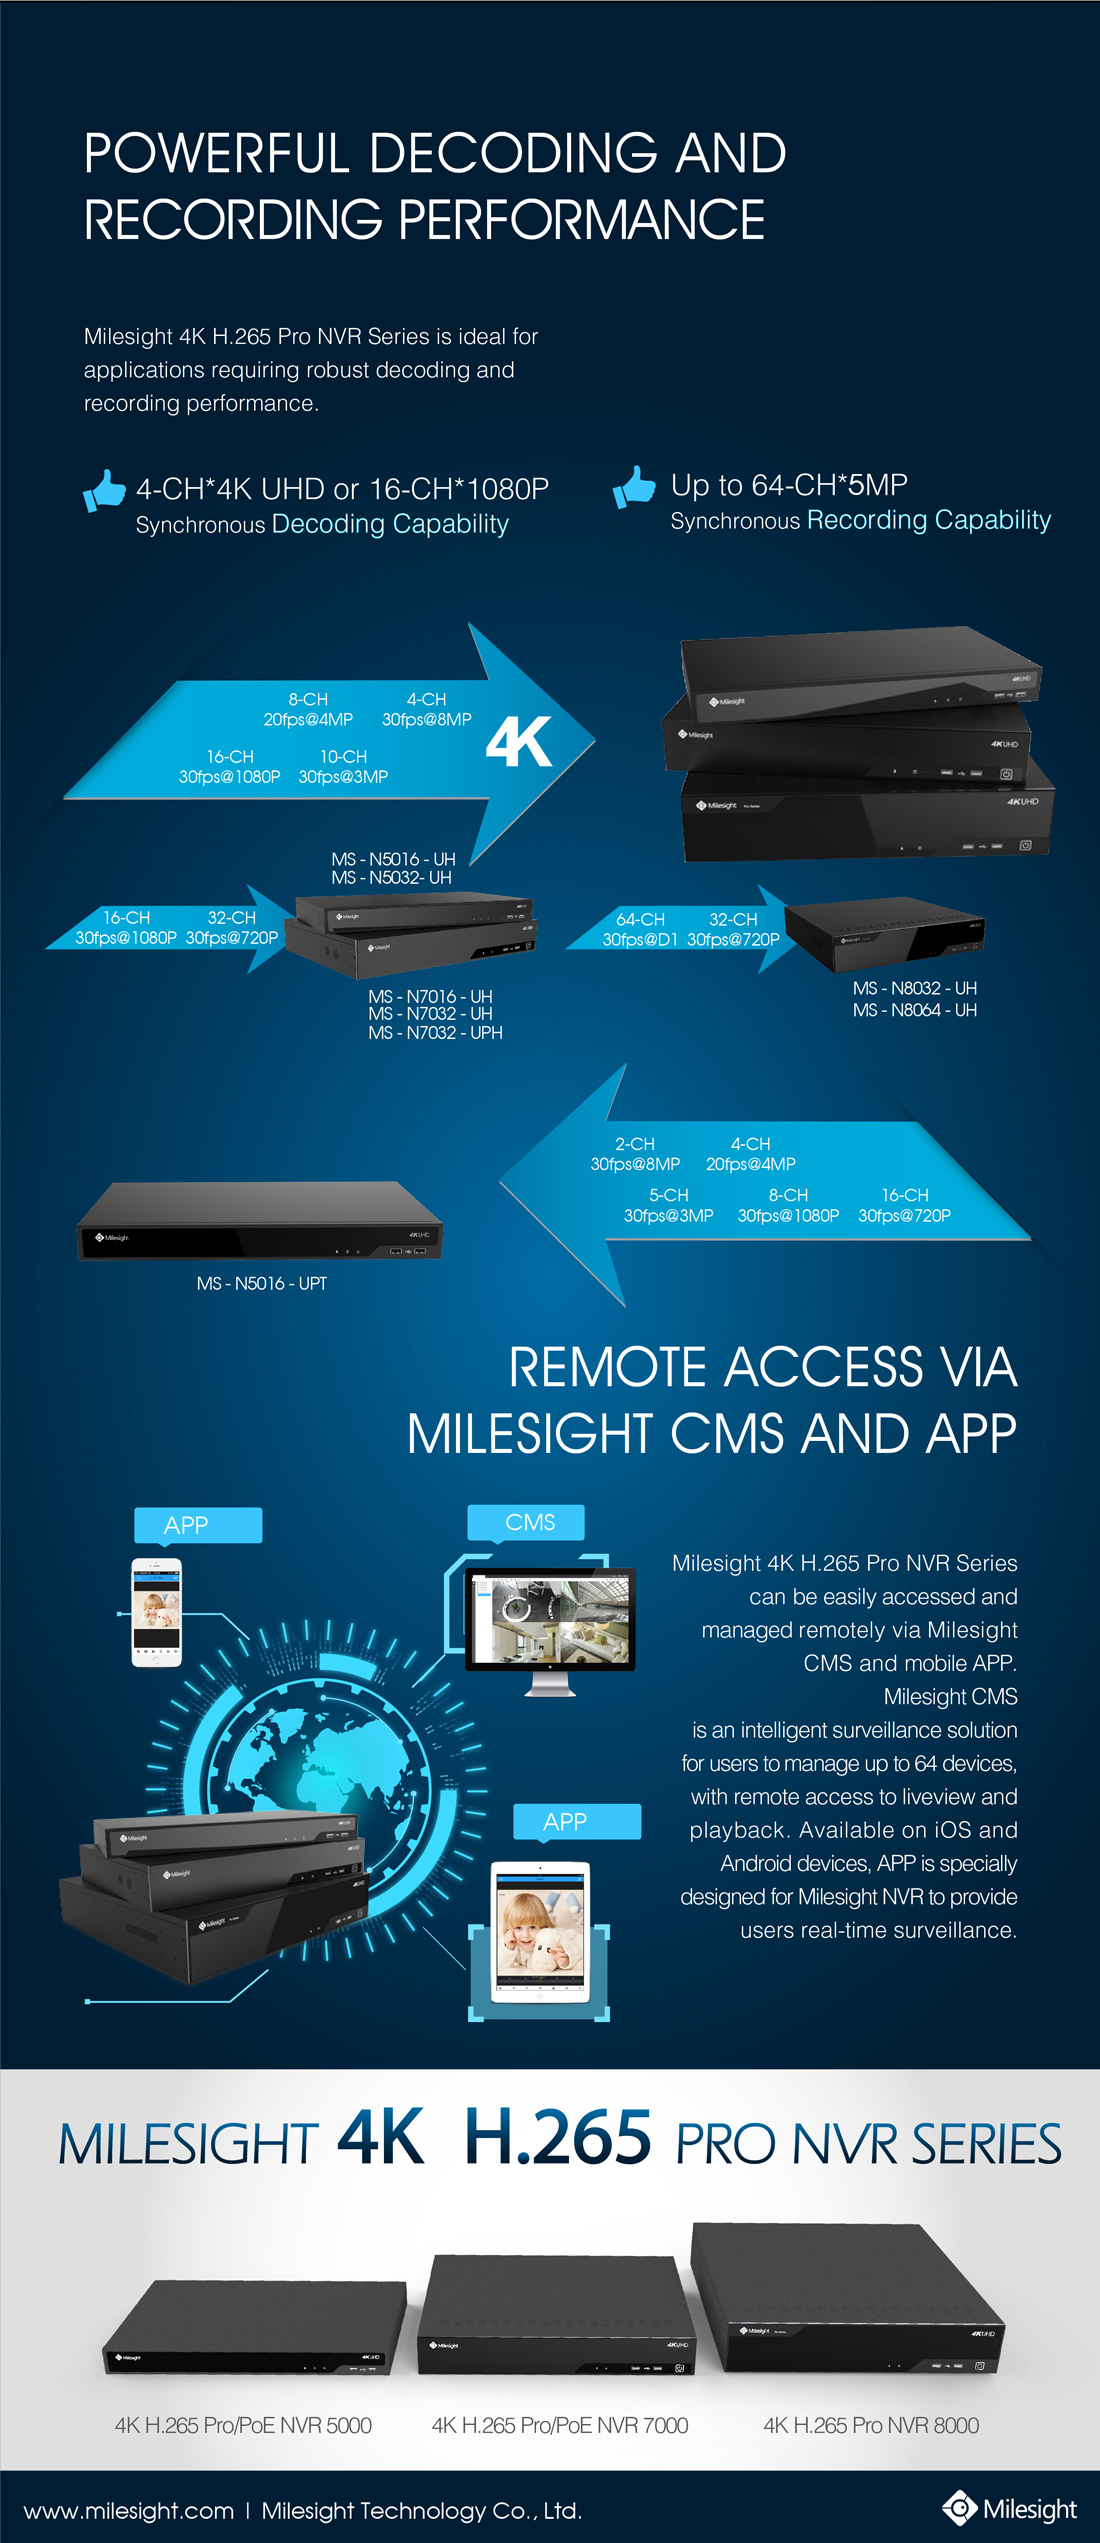 The Milesight 4K H.265 Pro NVR Series with powerful decoding and recording performance achieves remote access via Milesight CMS and APP.